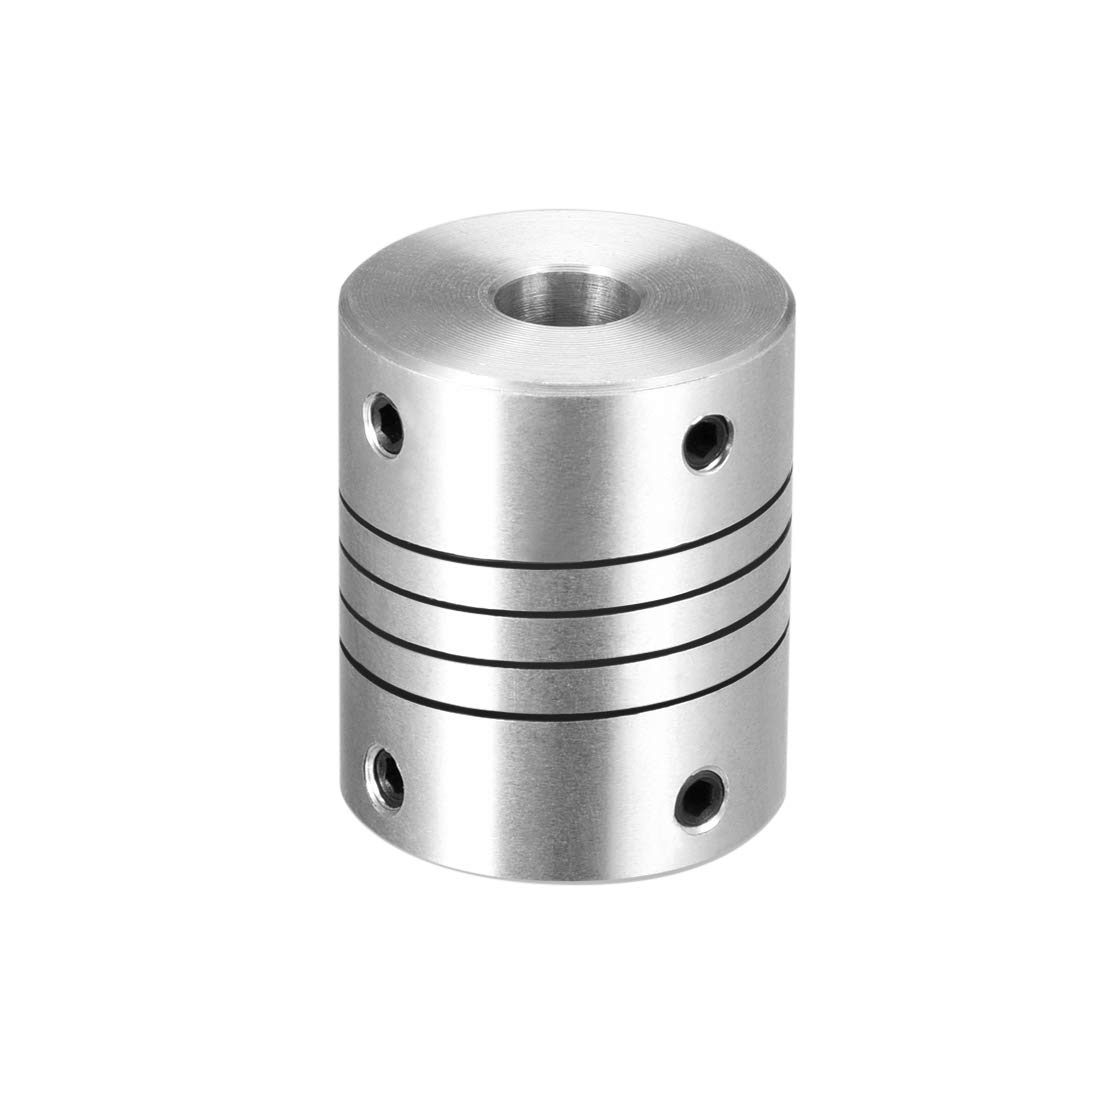 uxcell 8mm to 8mm Stainless Steel Shaft Coupling Flexible Coupler Motor Connector Joint L30xD25 Silver by uxcell (Image #1)